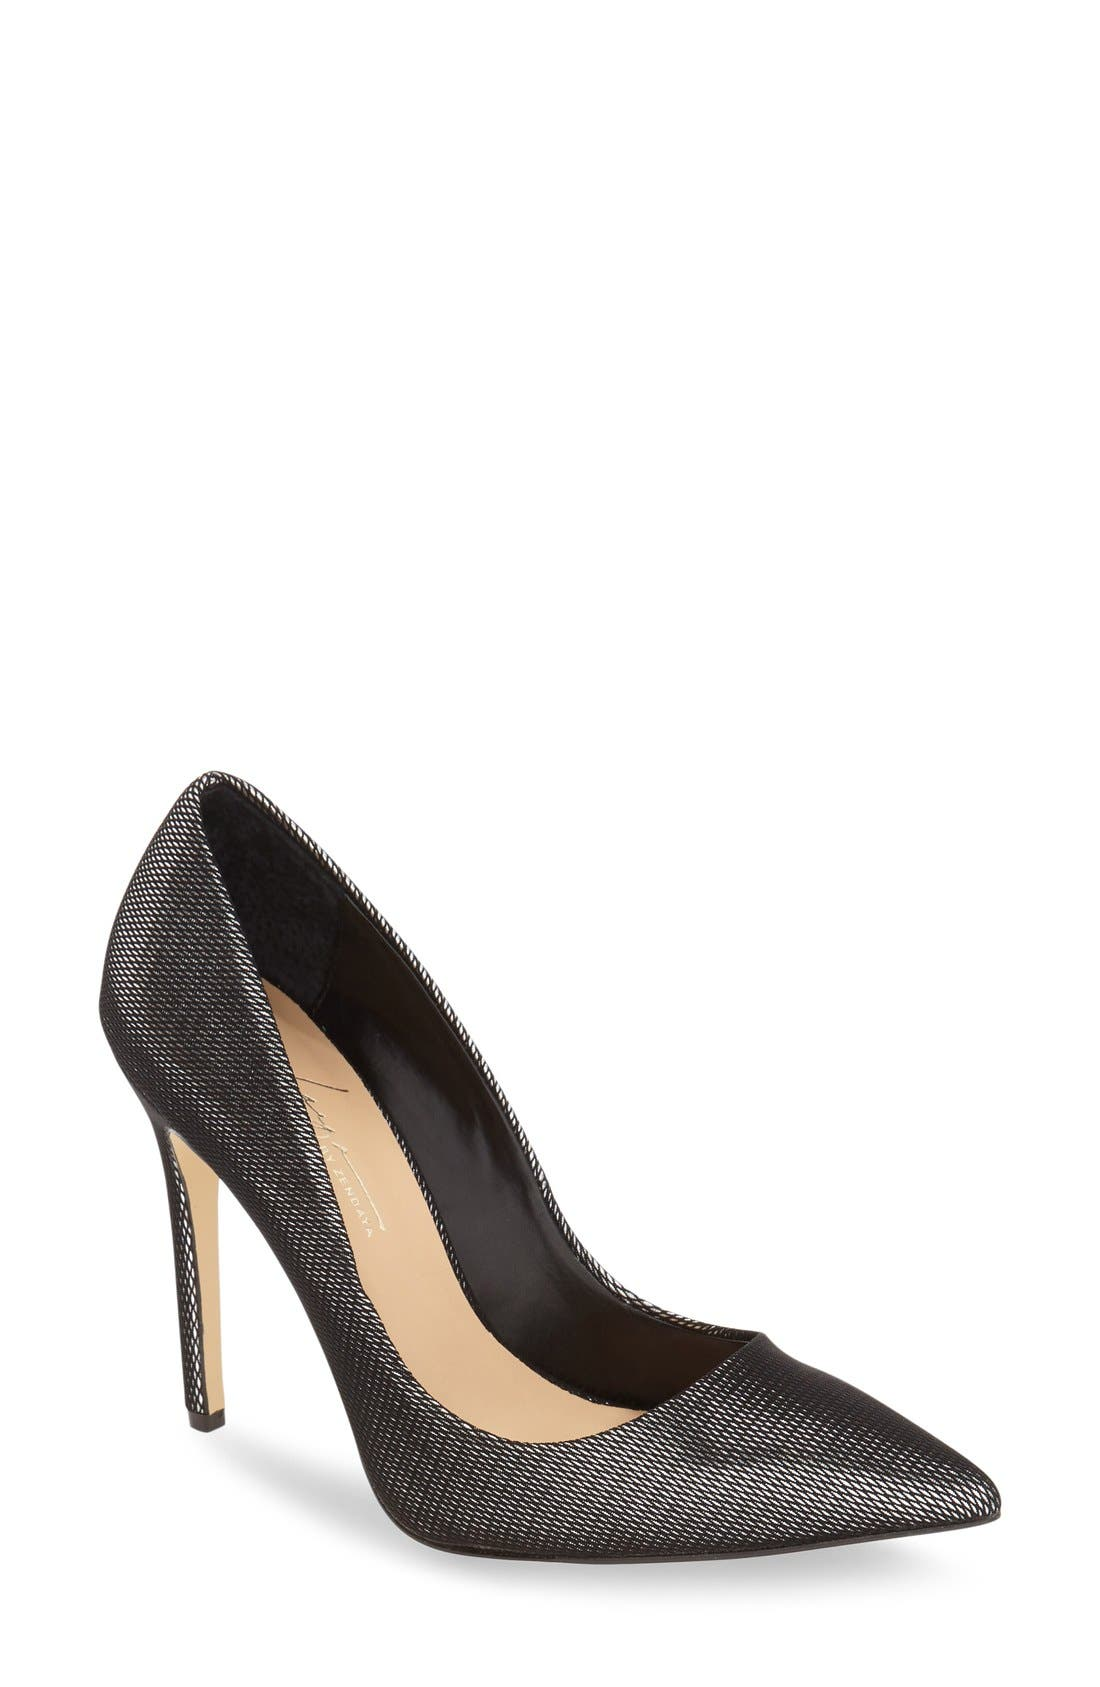 Main Image - Daya by Zendaya 'Kyle' Pointy Toe Pump (Women)